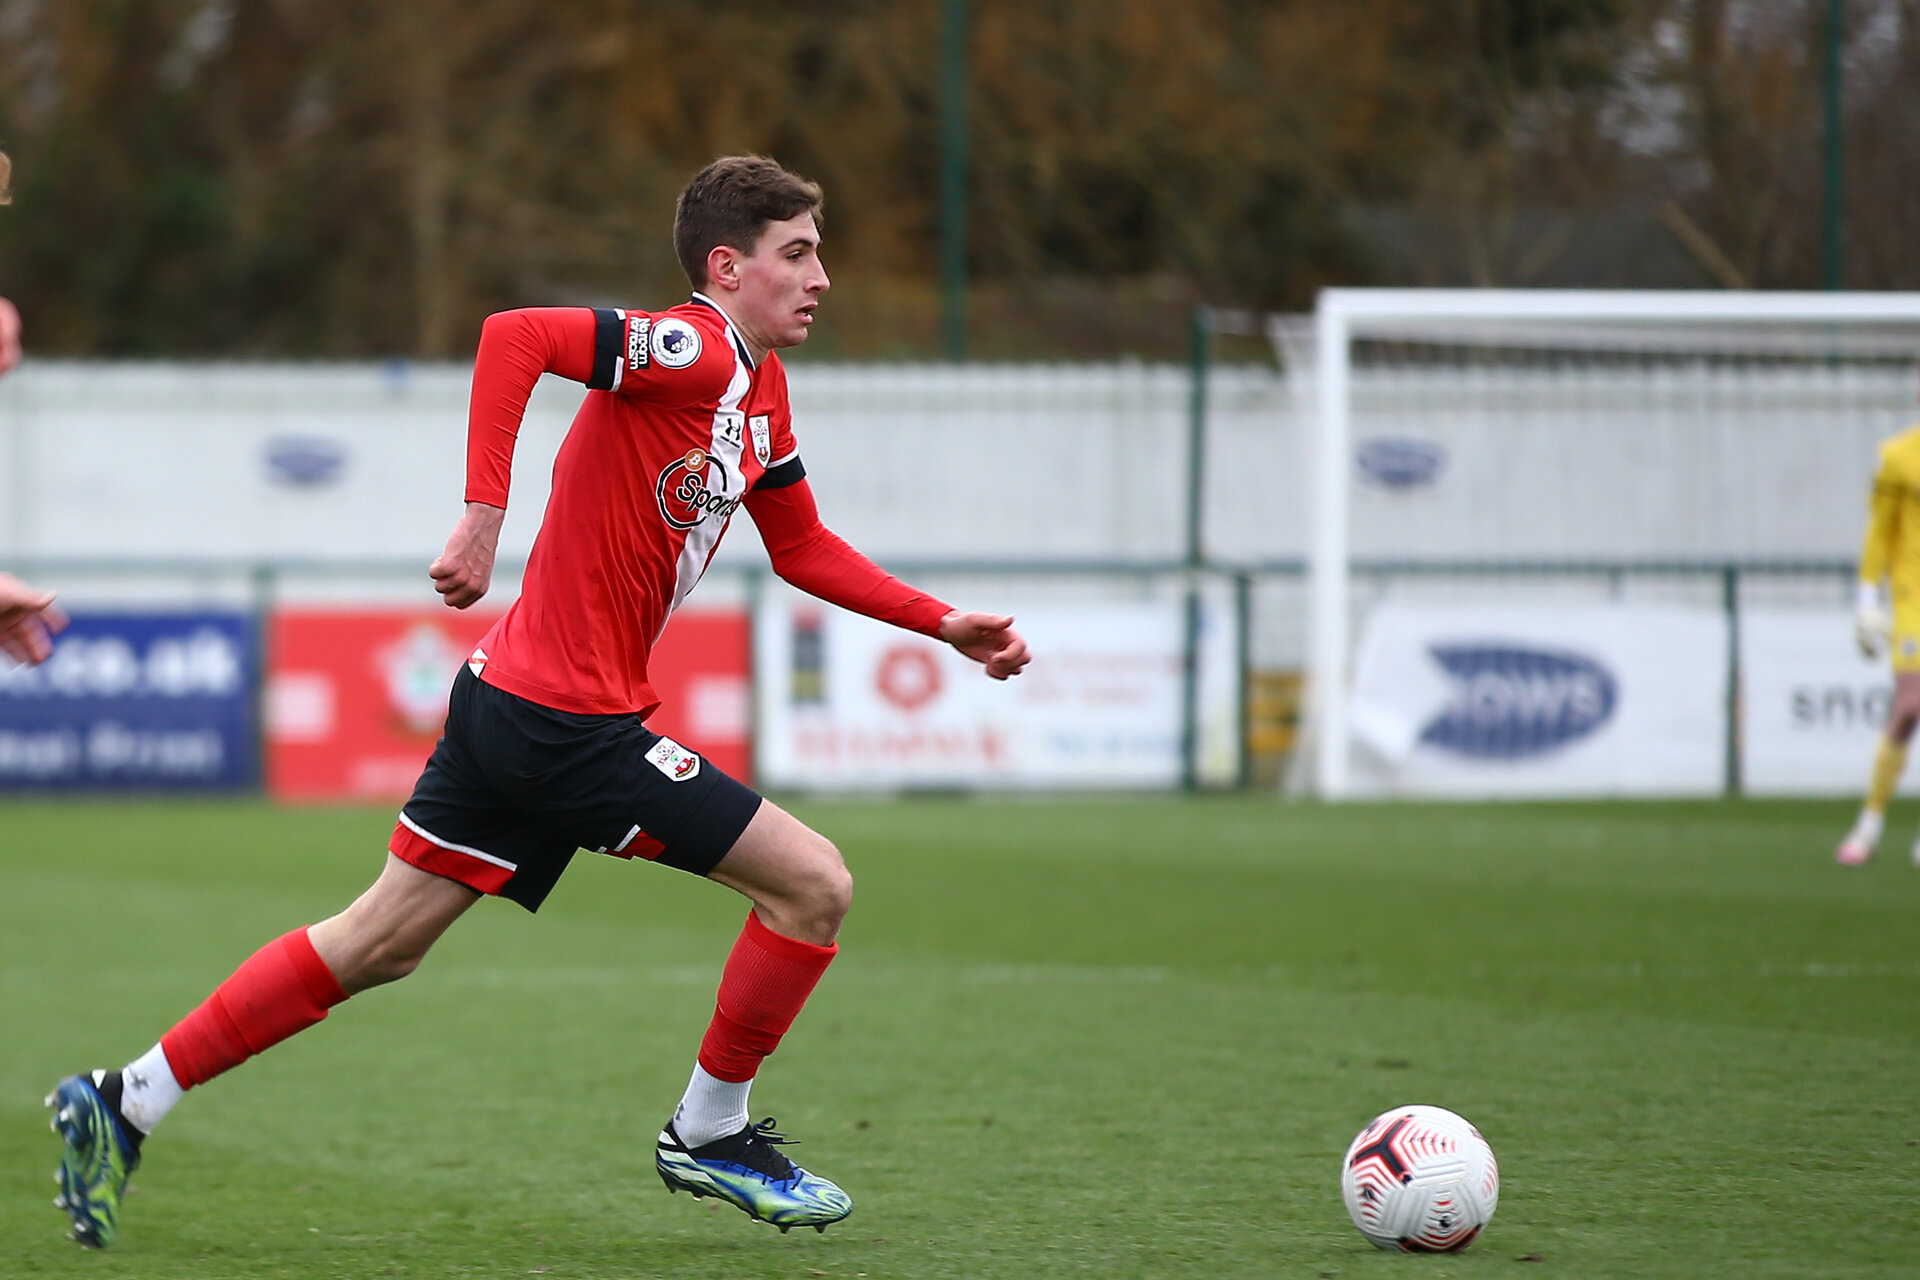 SOUTHAMPTON, ENGLAND - FEBRUARY 07: James Morris of Southampton during the Premier League 2 match between  Southampton B Team and Tottenham Hotspur at Snows Stadium on February 07, 2021 in Southampton, England. (Photo by Isabelle Field/Southampton FC via Getty Images)